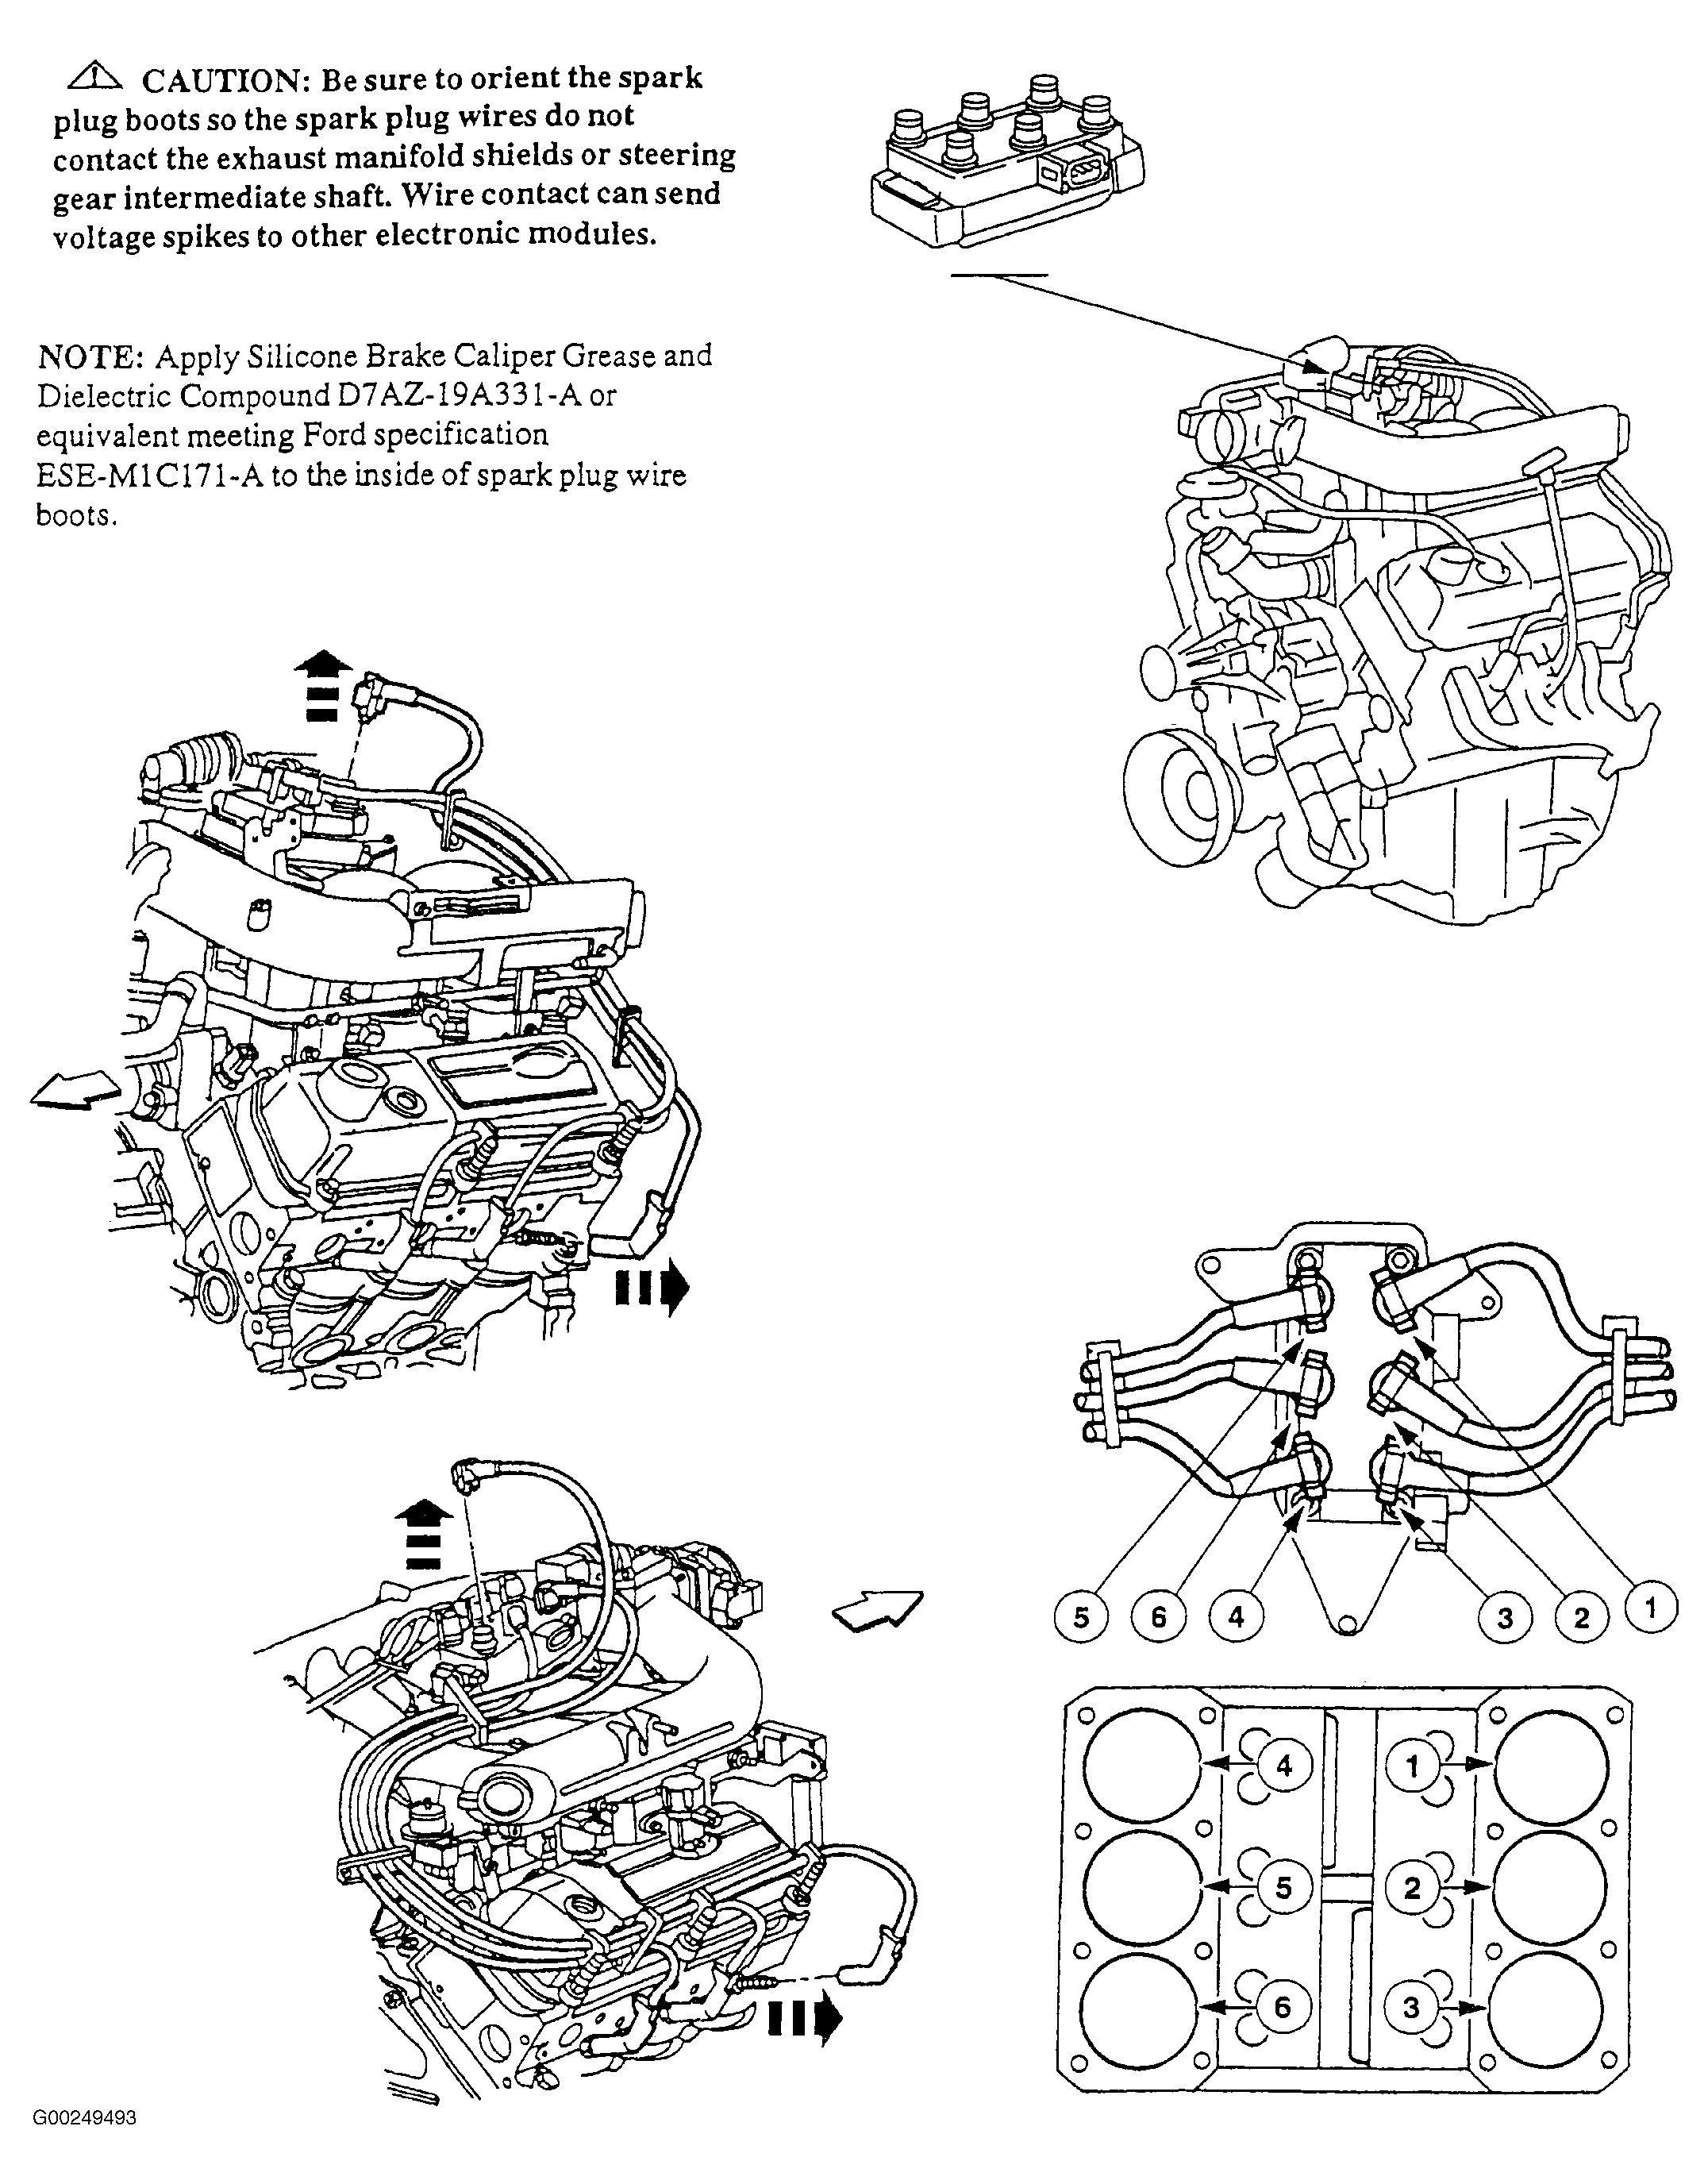 1997 Ford F150 Spark Plug Wiring Diagram Britishpanto For Alluring